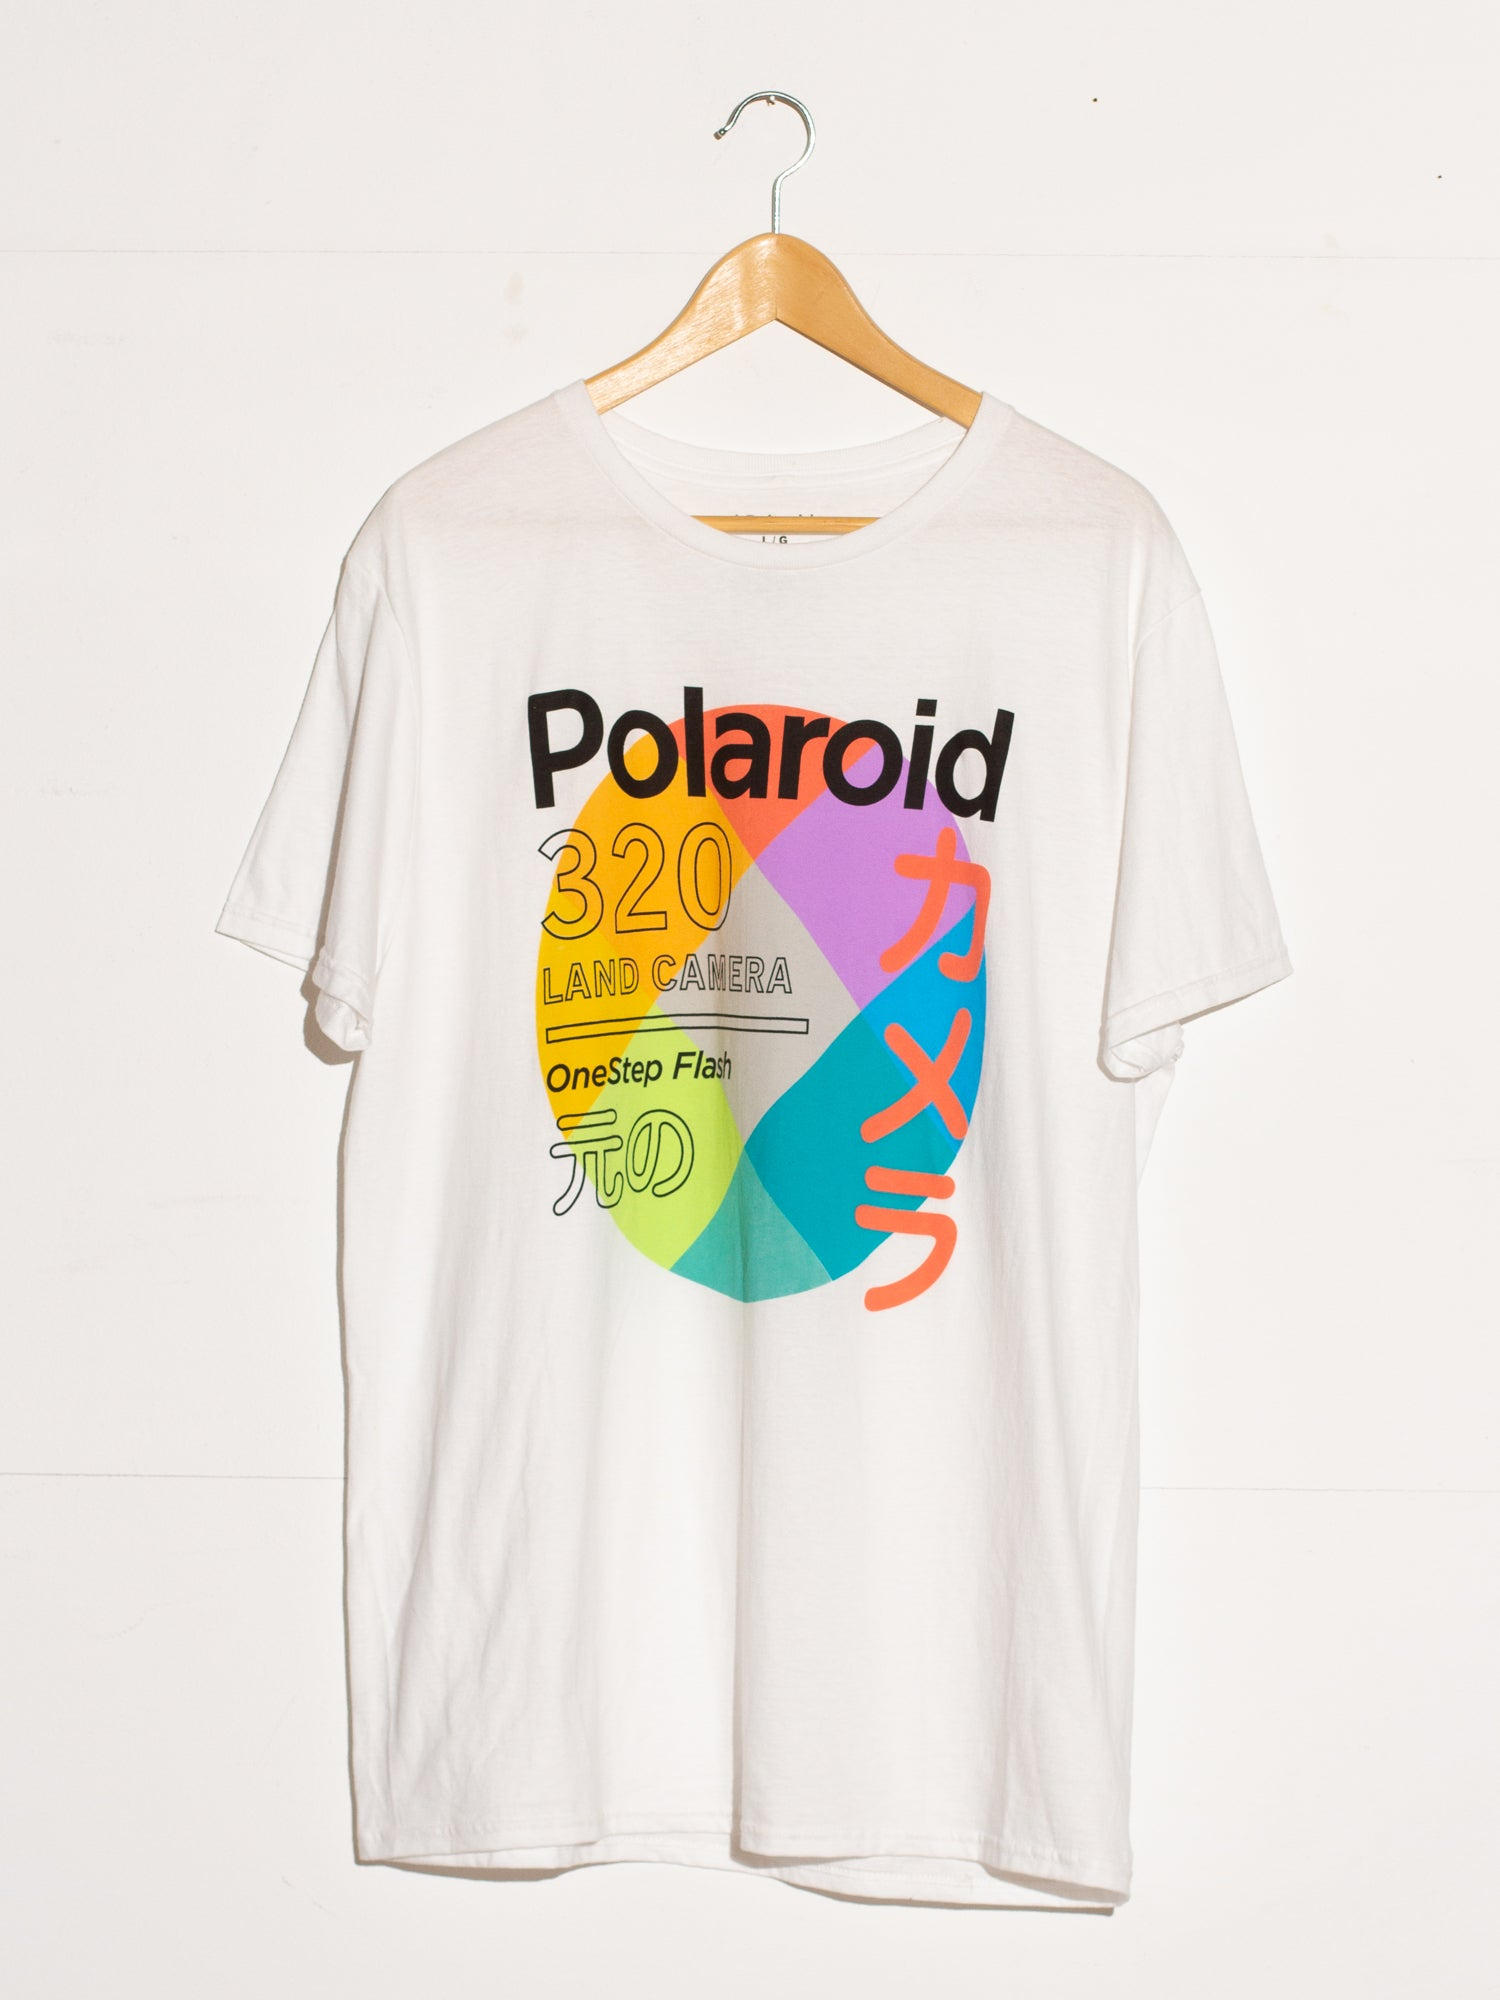 NEW POLAROID PRINT SHIRT